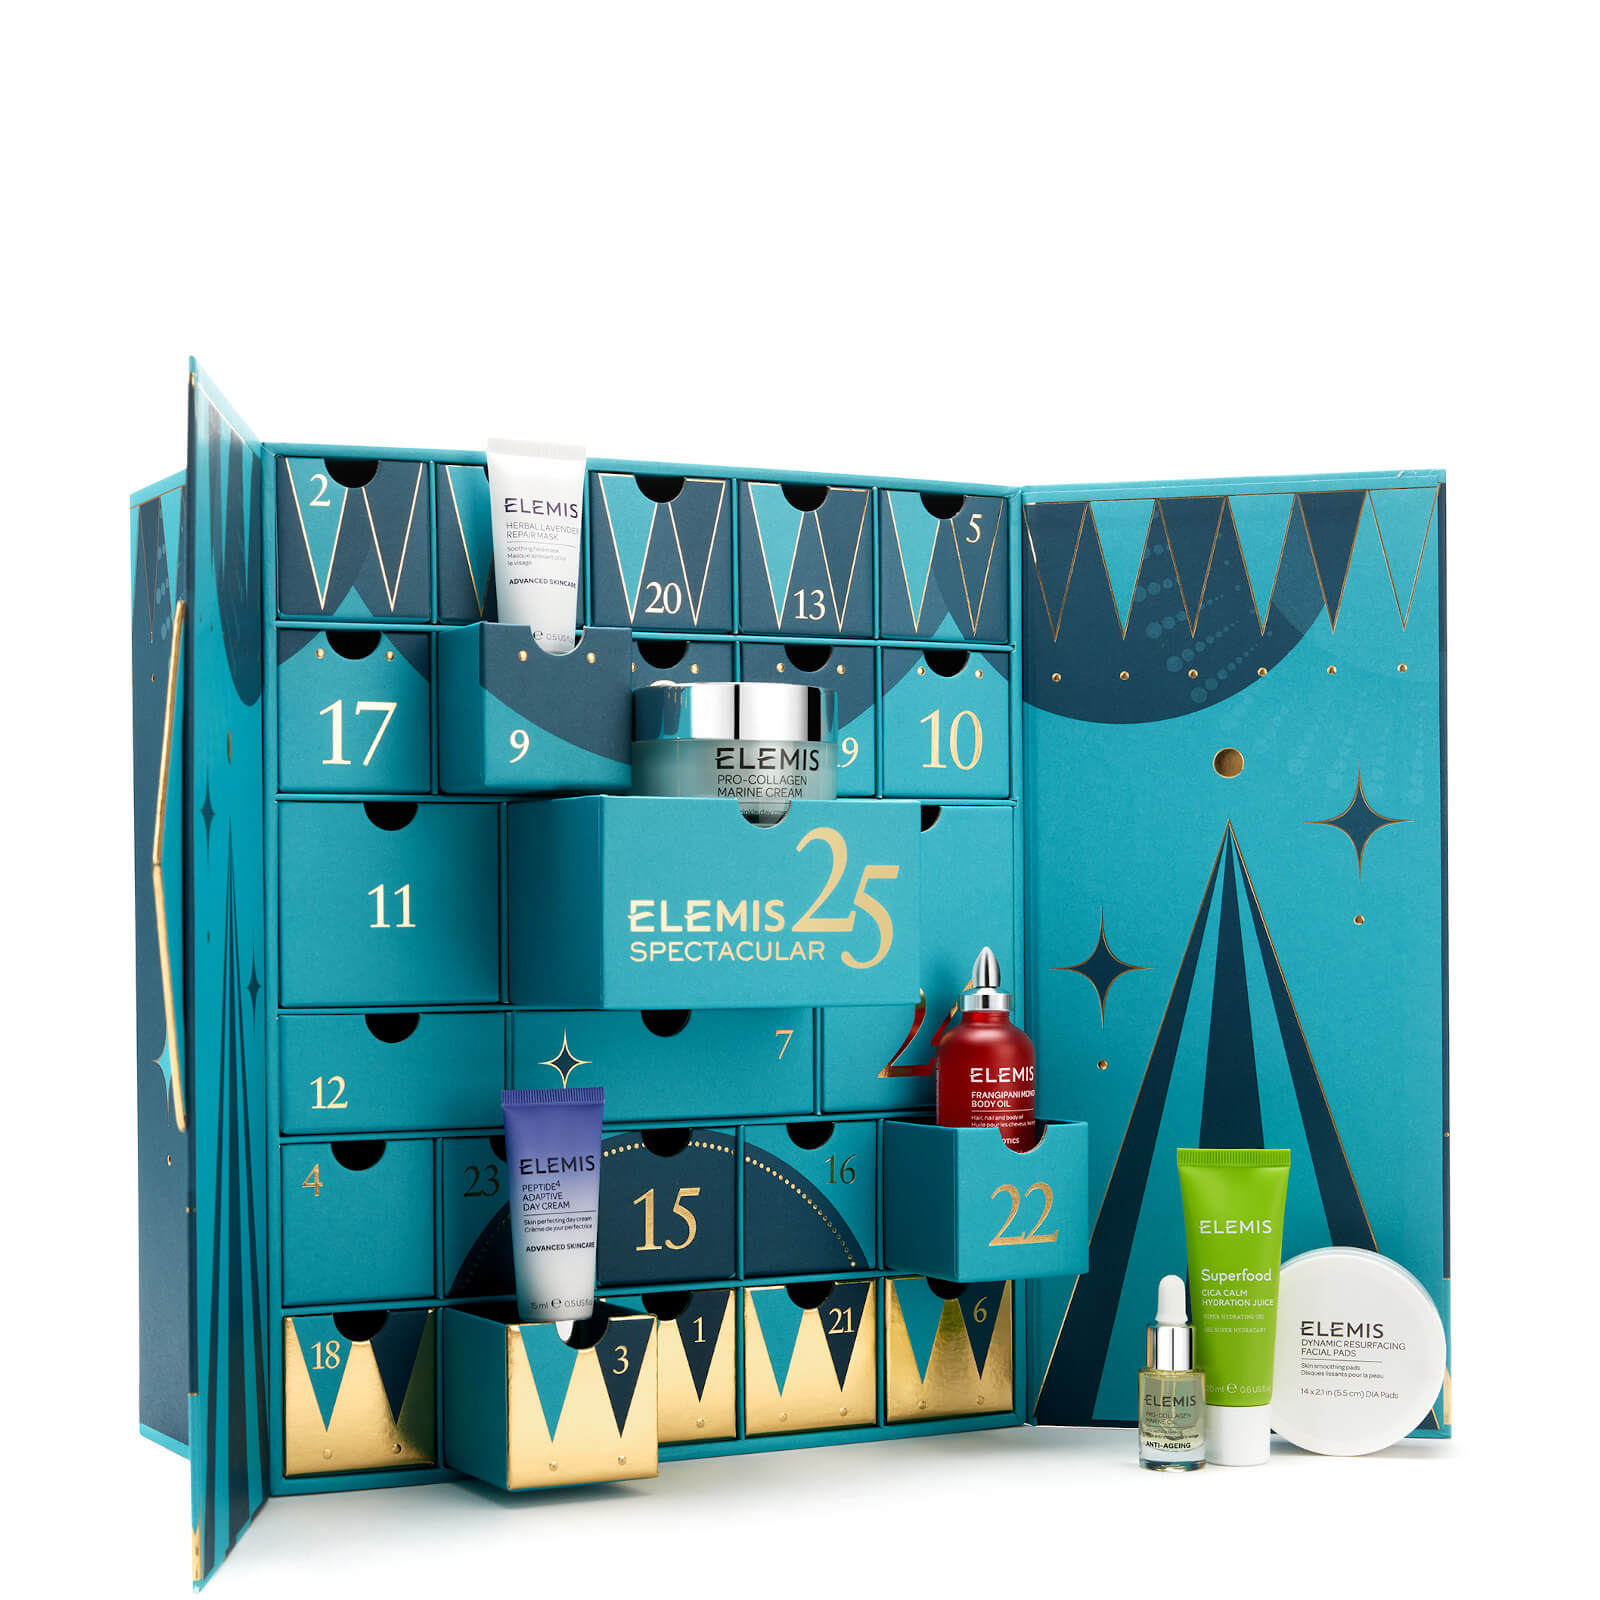 ELEMIS Adventskalender 2020 - 25 Days of Spectacular Skin